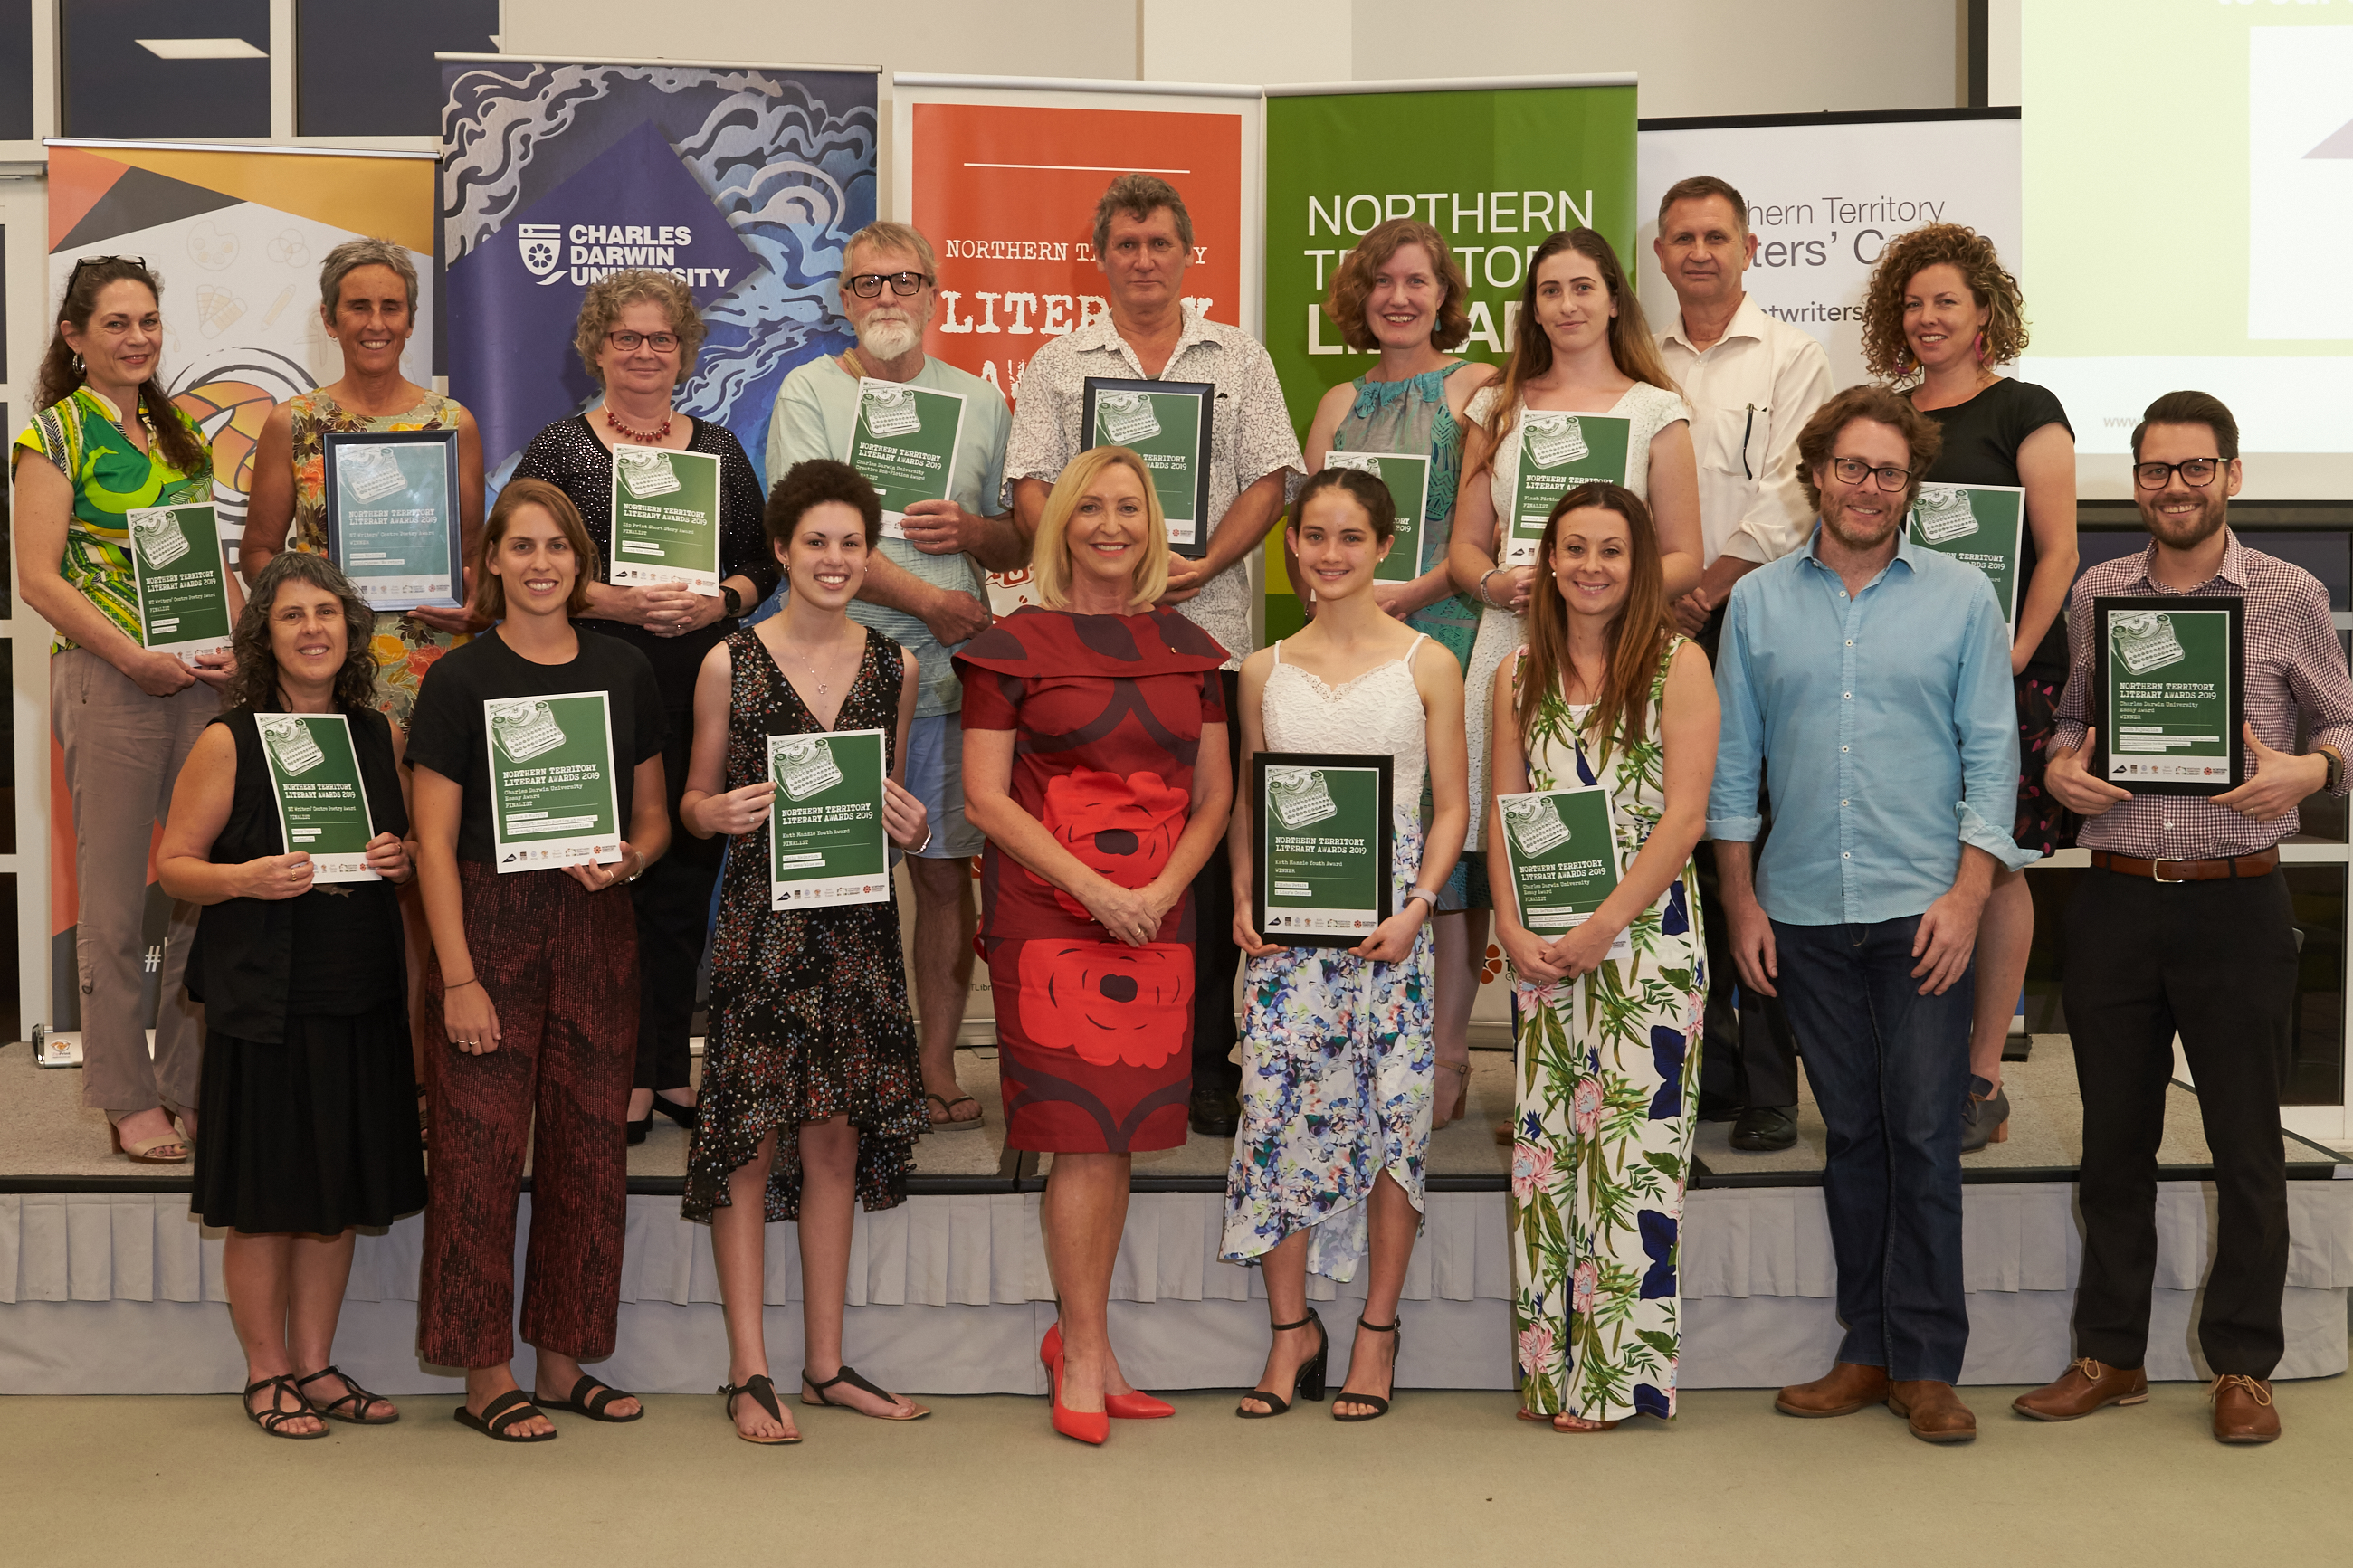 Finalists holding up certificates for the 2019 NT literary awards